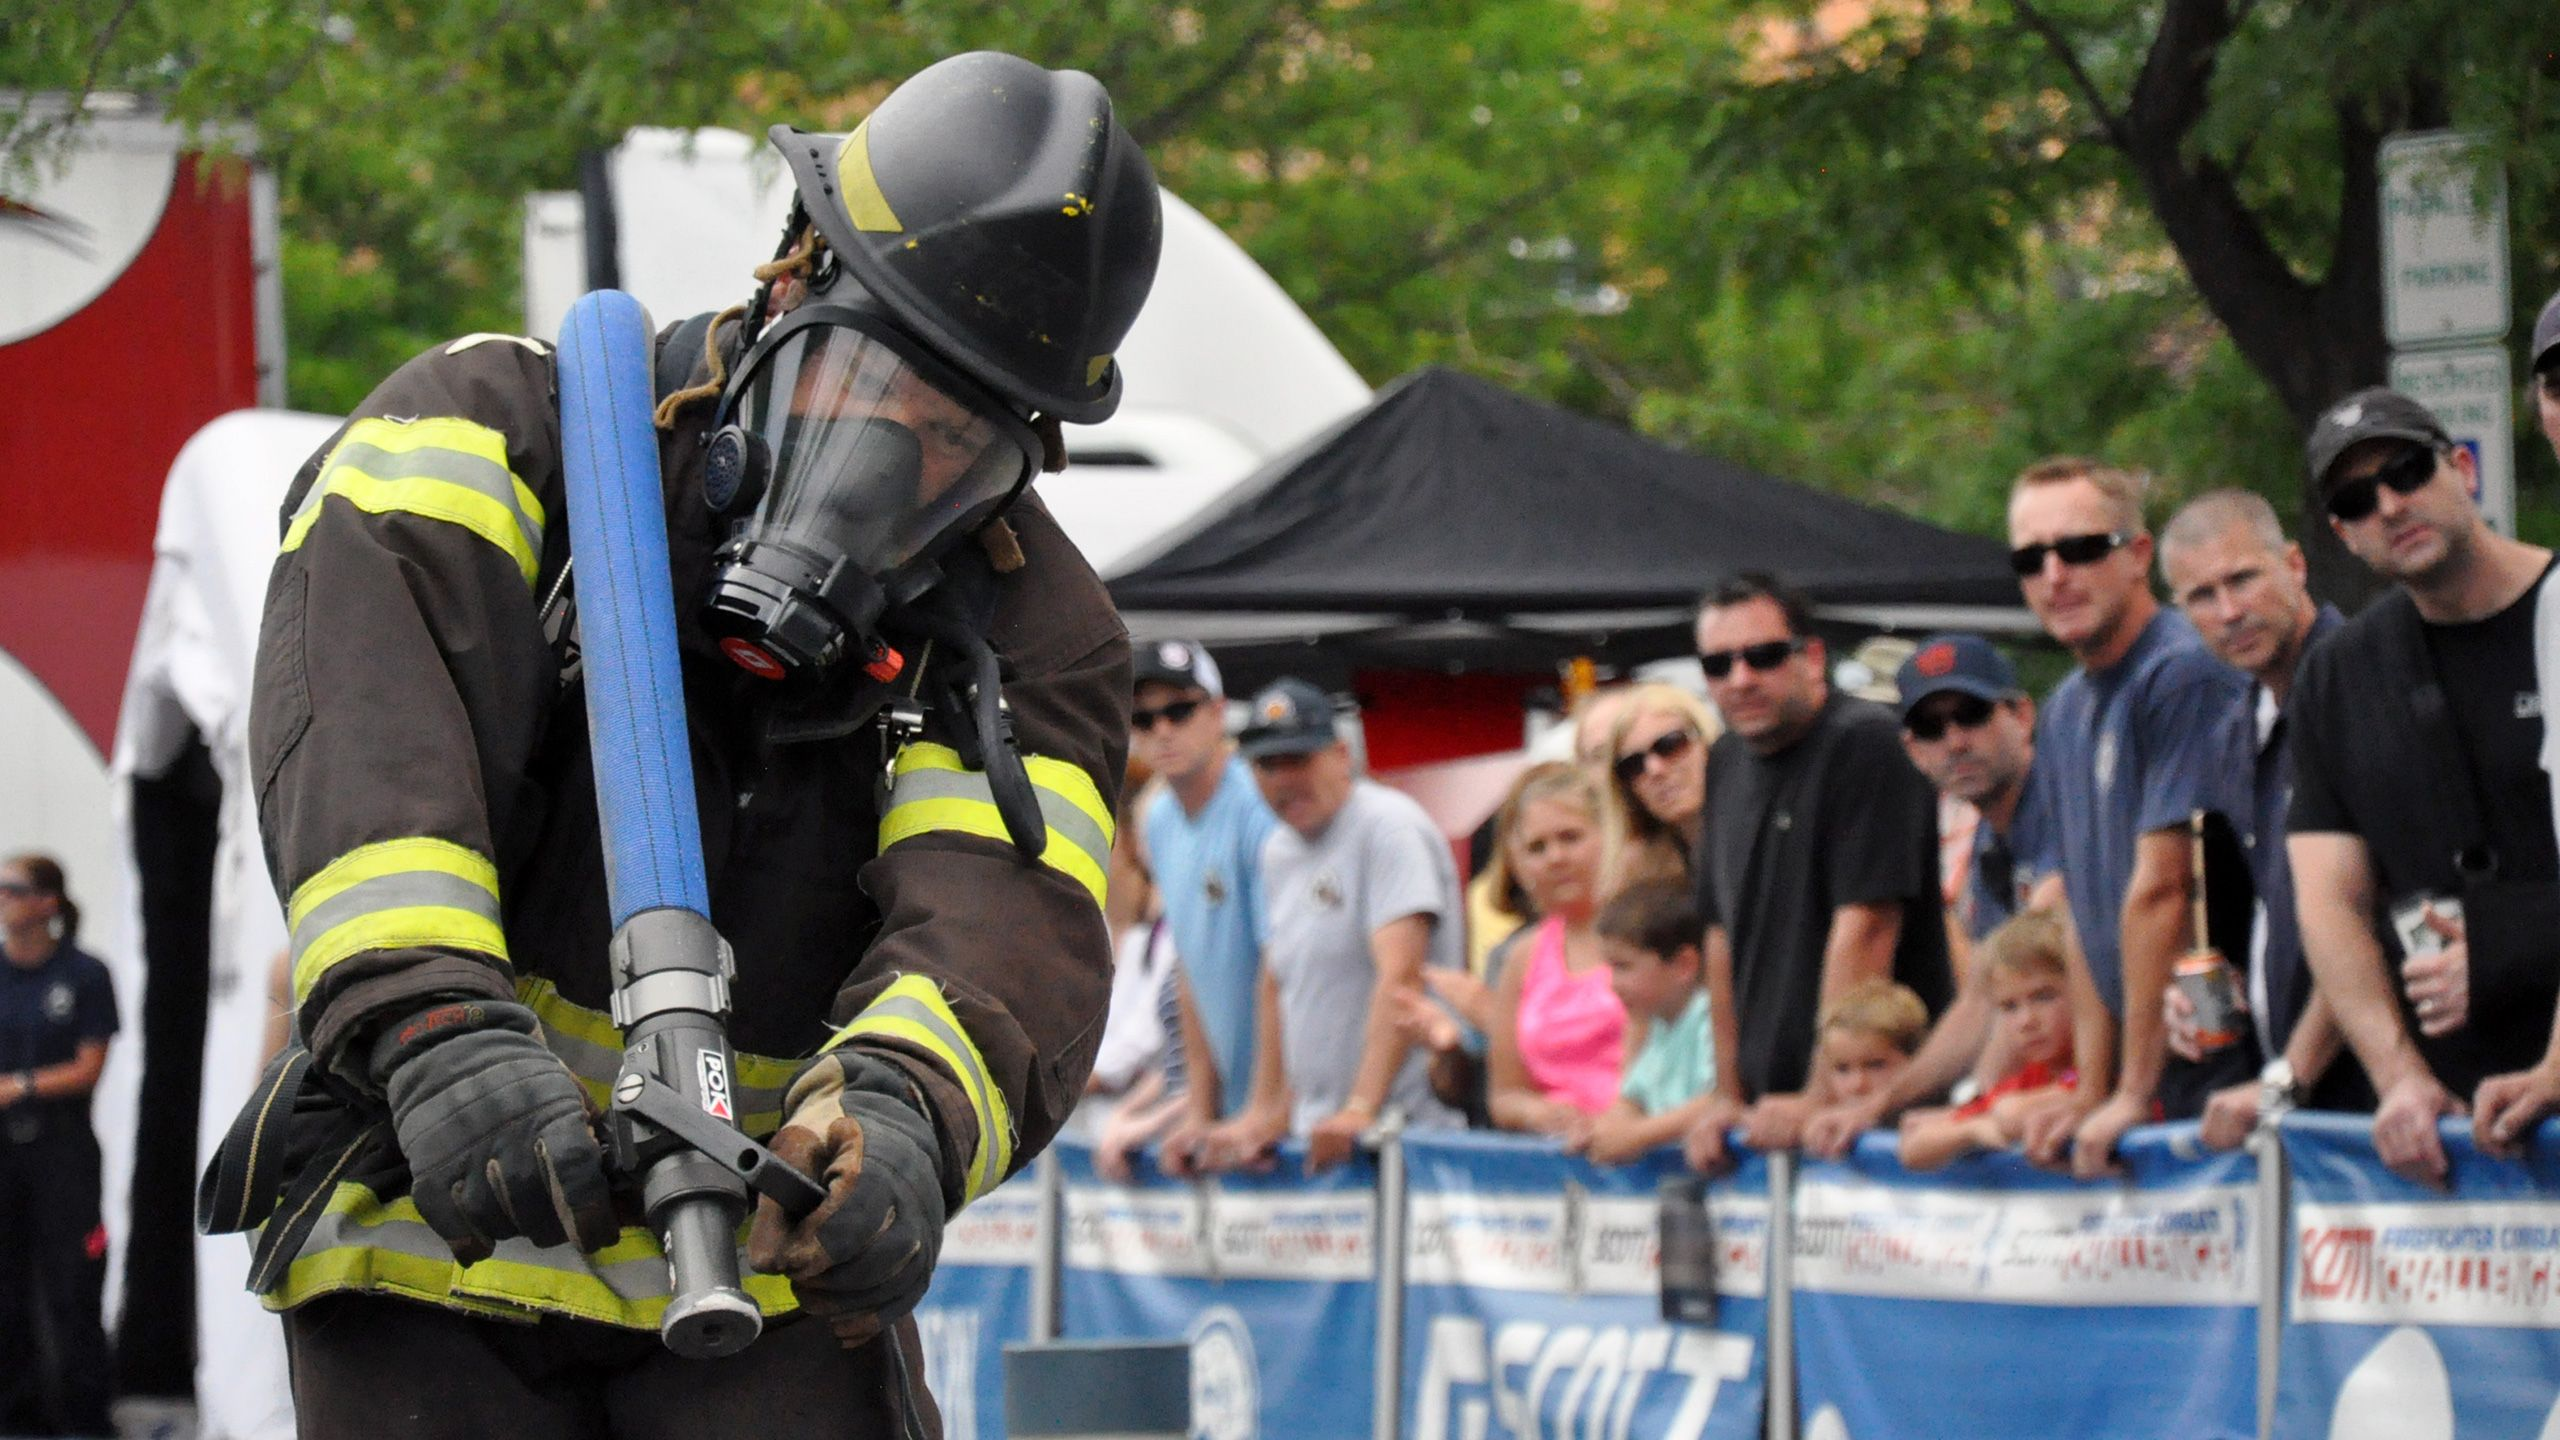 Firefighter World Challenge XXVI